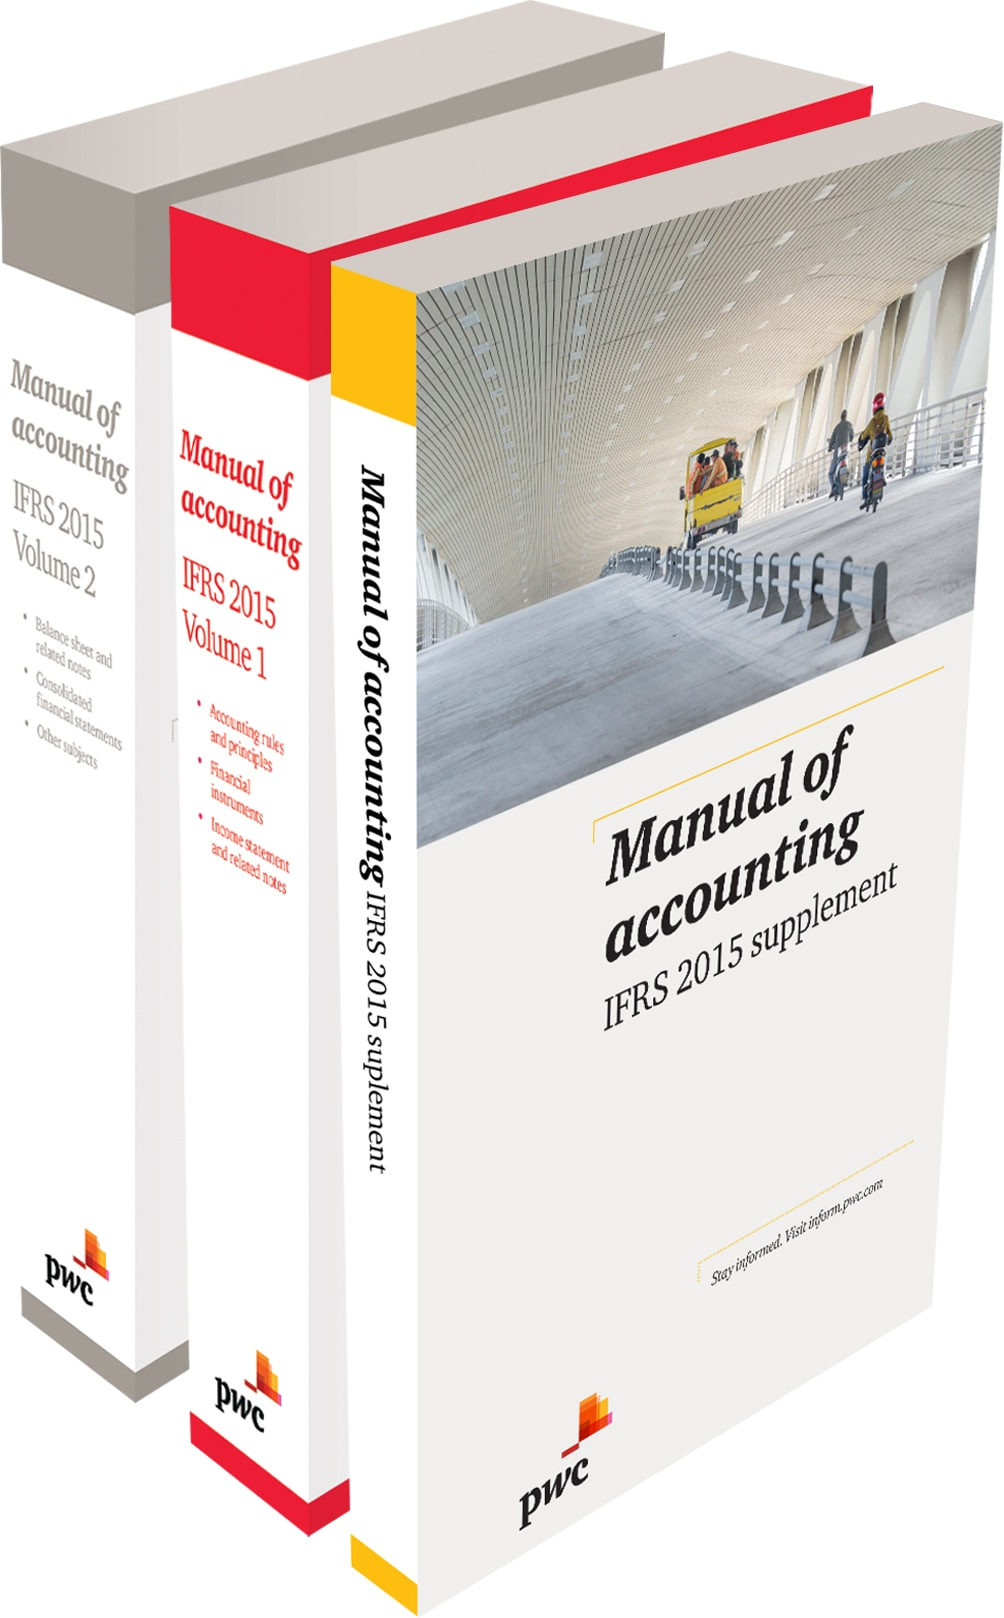 Manual of accounting - IFRS 2013